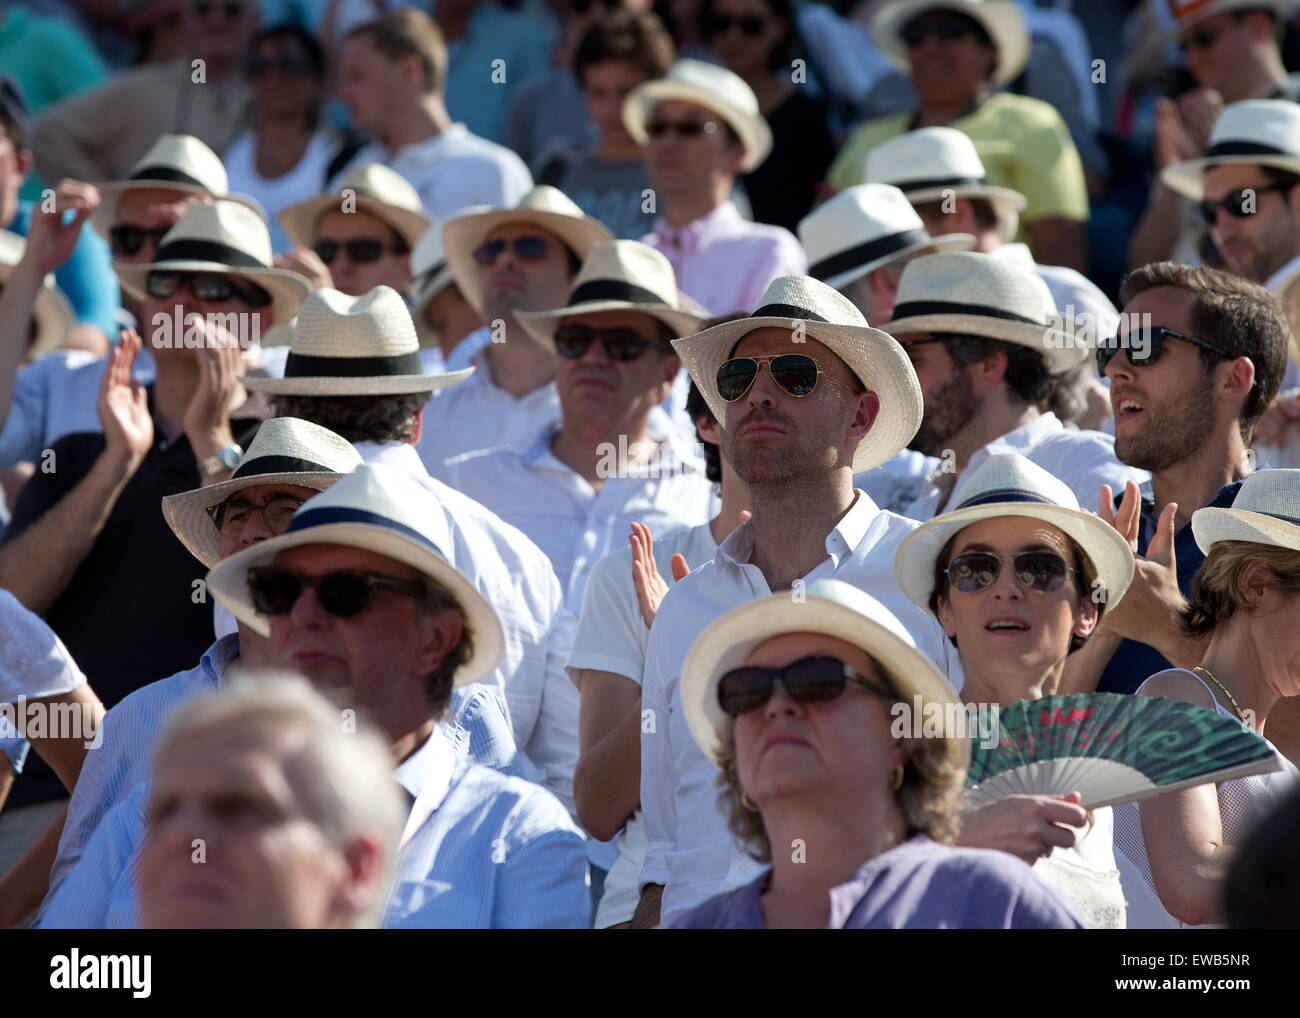 ac60be57dc52b Spectators wearing hats at the French Open 2015 - Stock Image